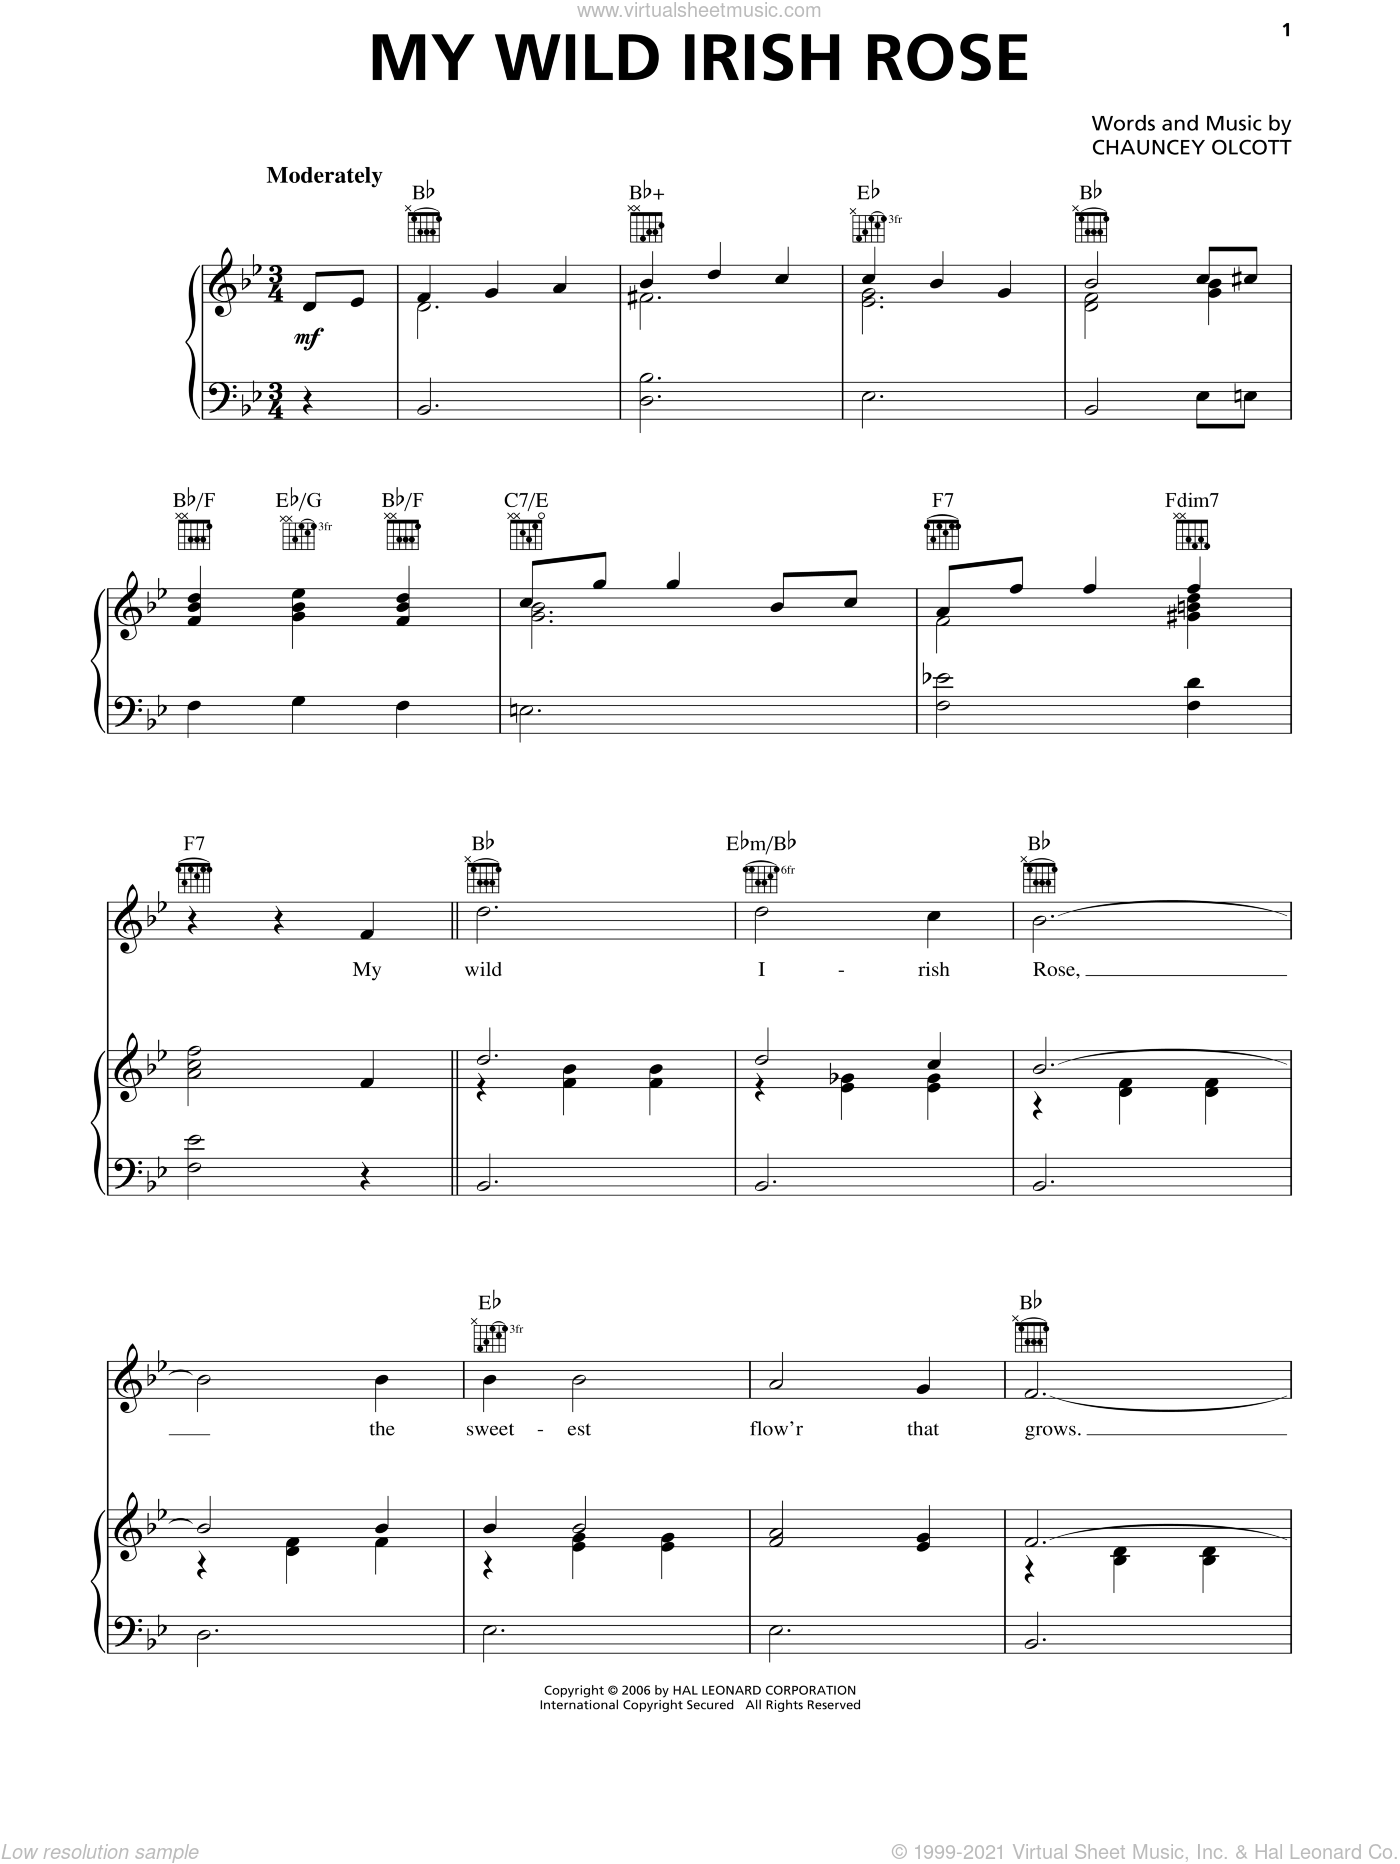 My Wild Irish Rose Sheet Music For Voice, Piano